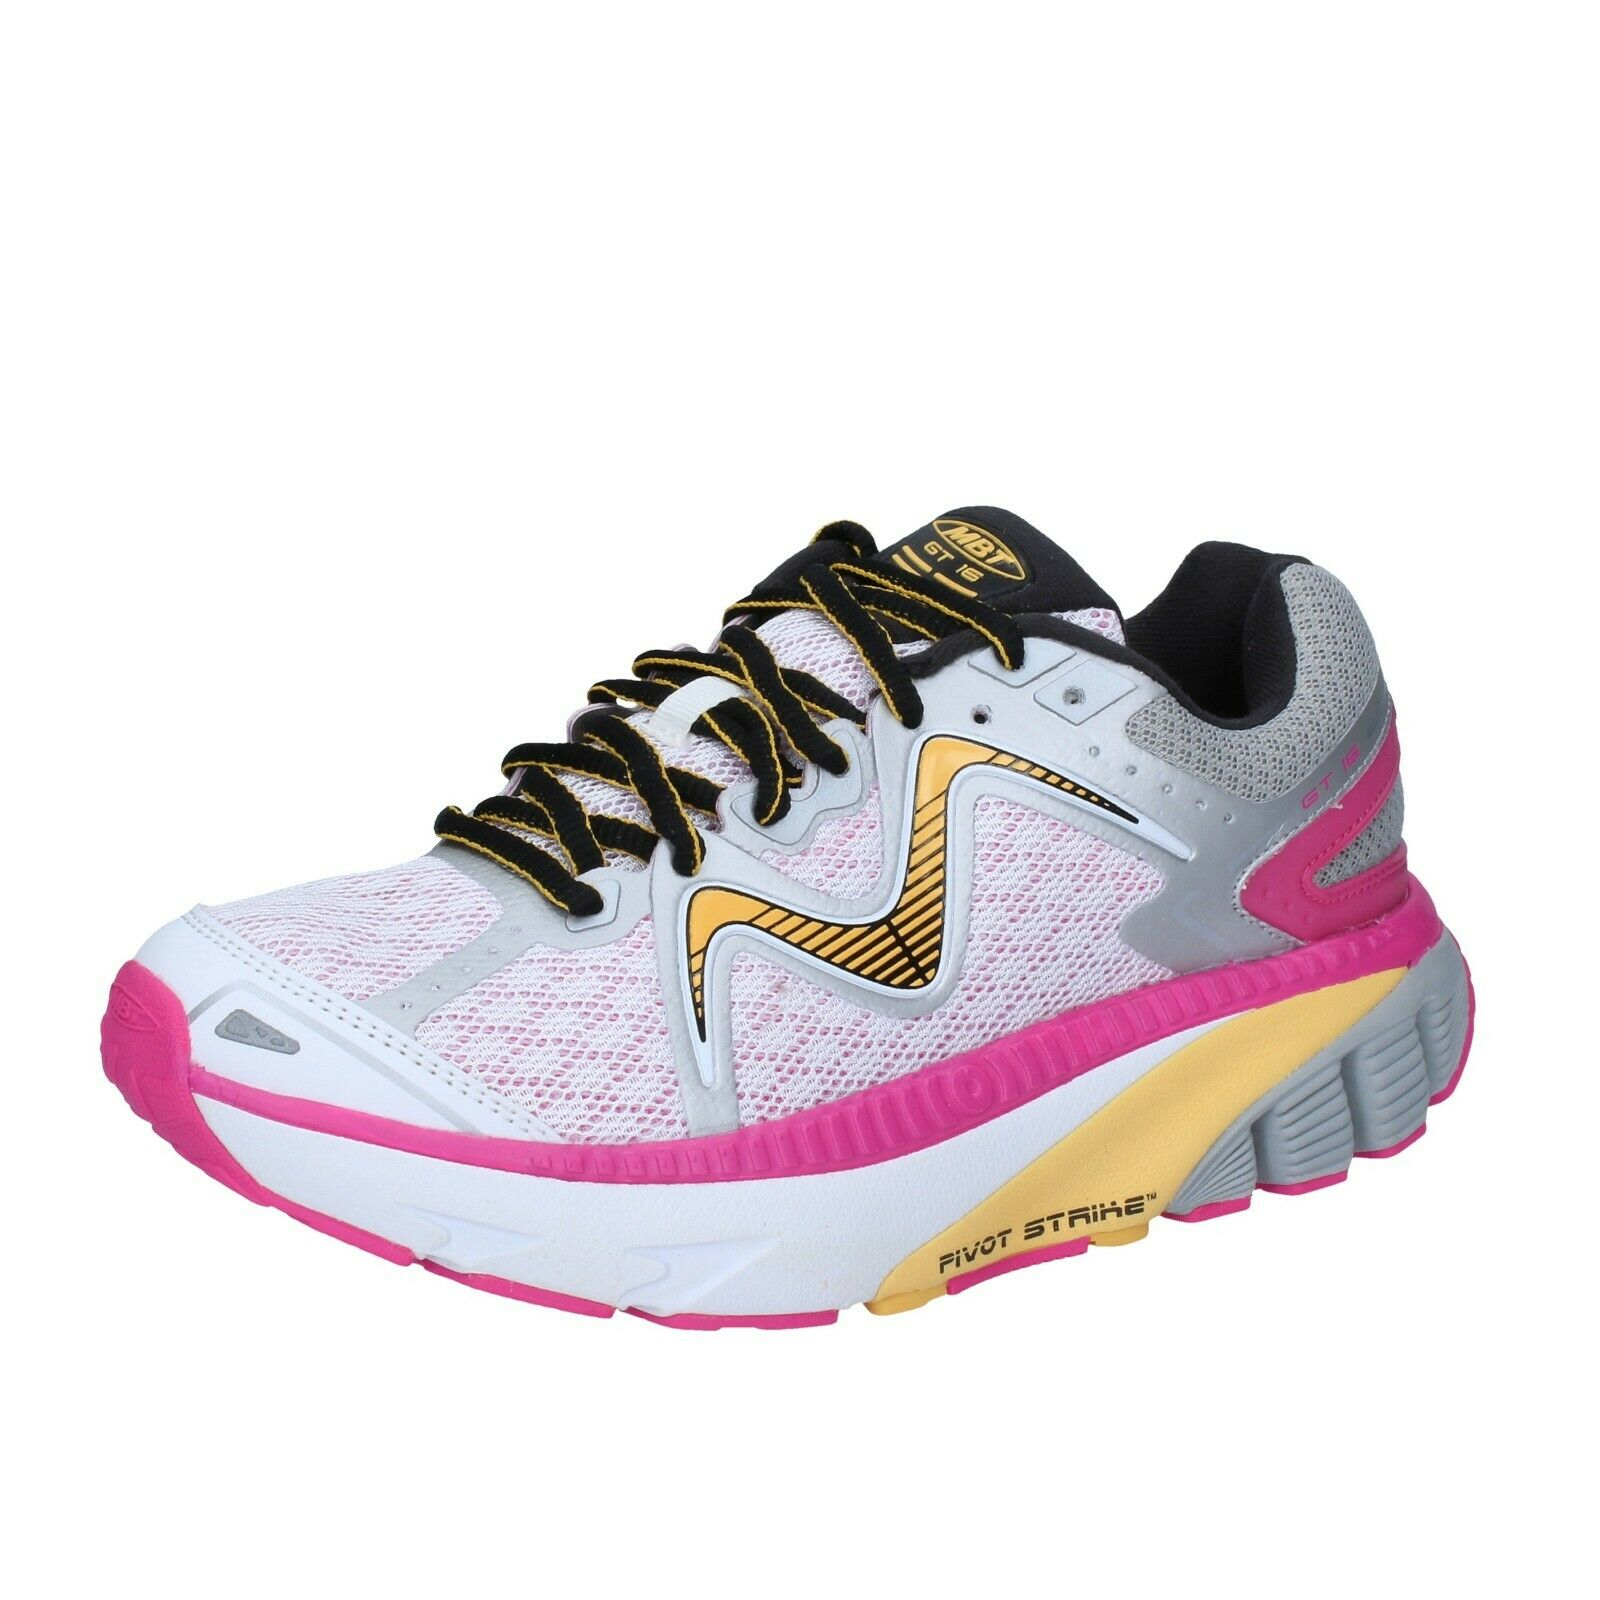 Womens shoes MBT 4,5 () sneakers white textile performance BS389-37,5